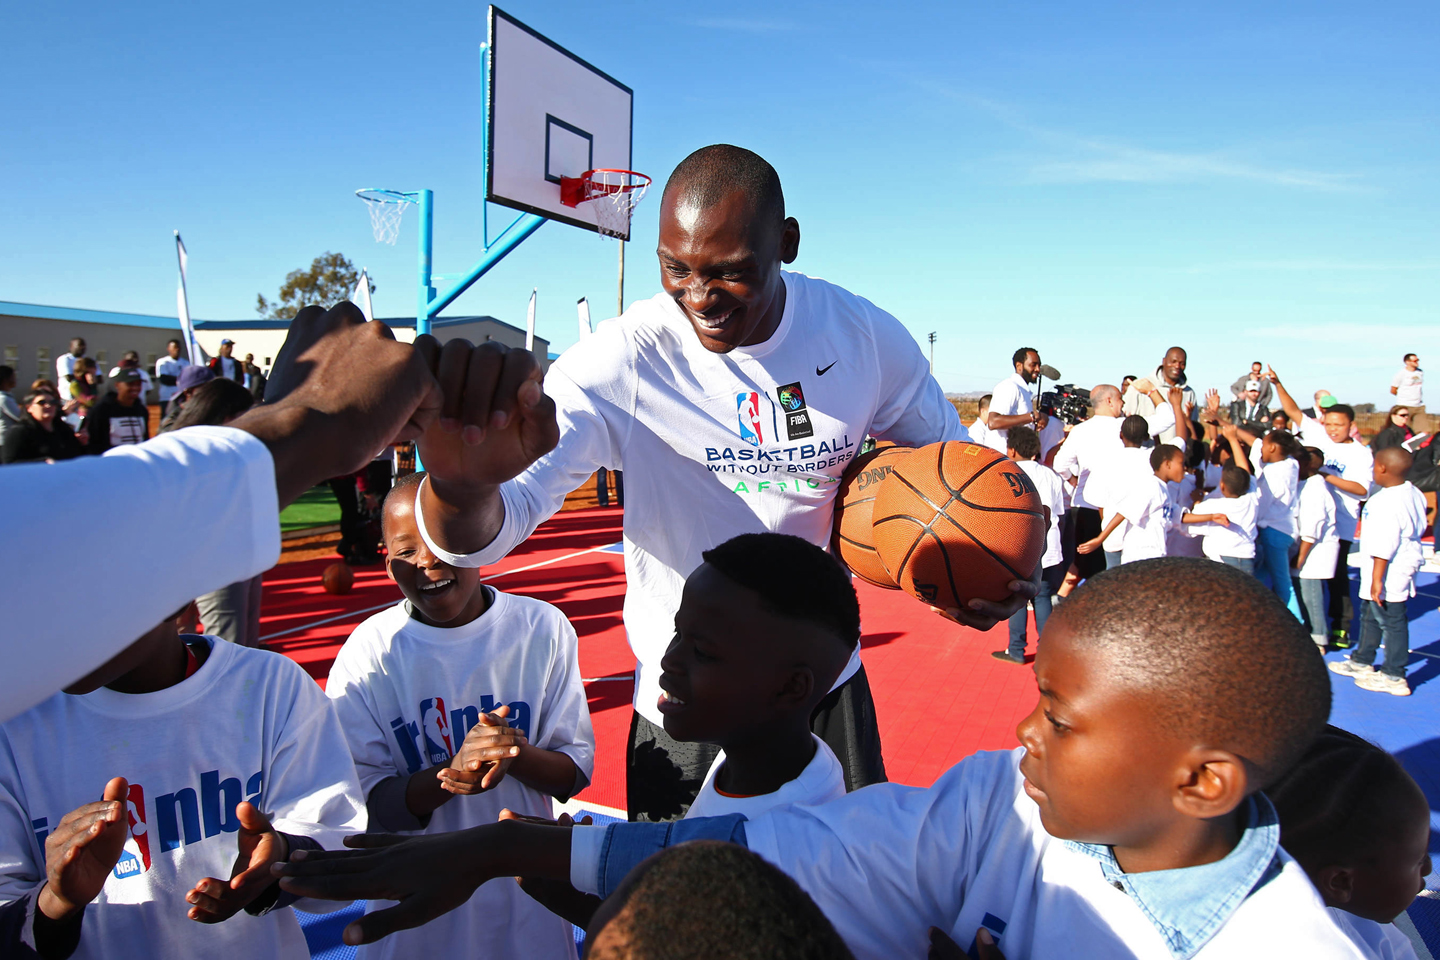 Bismack Biyombo #8 of the Toronto Raptors shakes kids hands during the Boys & Girls Club of Protea Glen court dedication as part the Basketball Without Boarders program on July 30, 2015 at the Protea Glen Clubhouse in Soweto, South Africa.